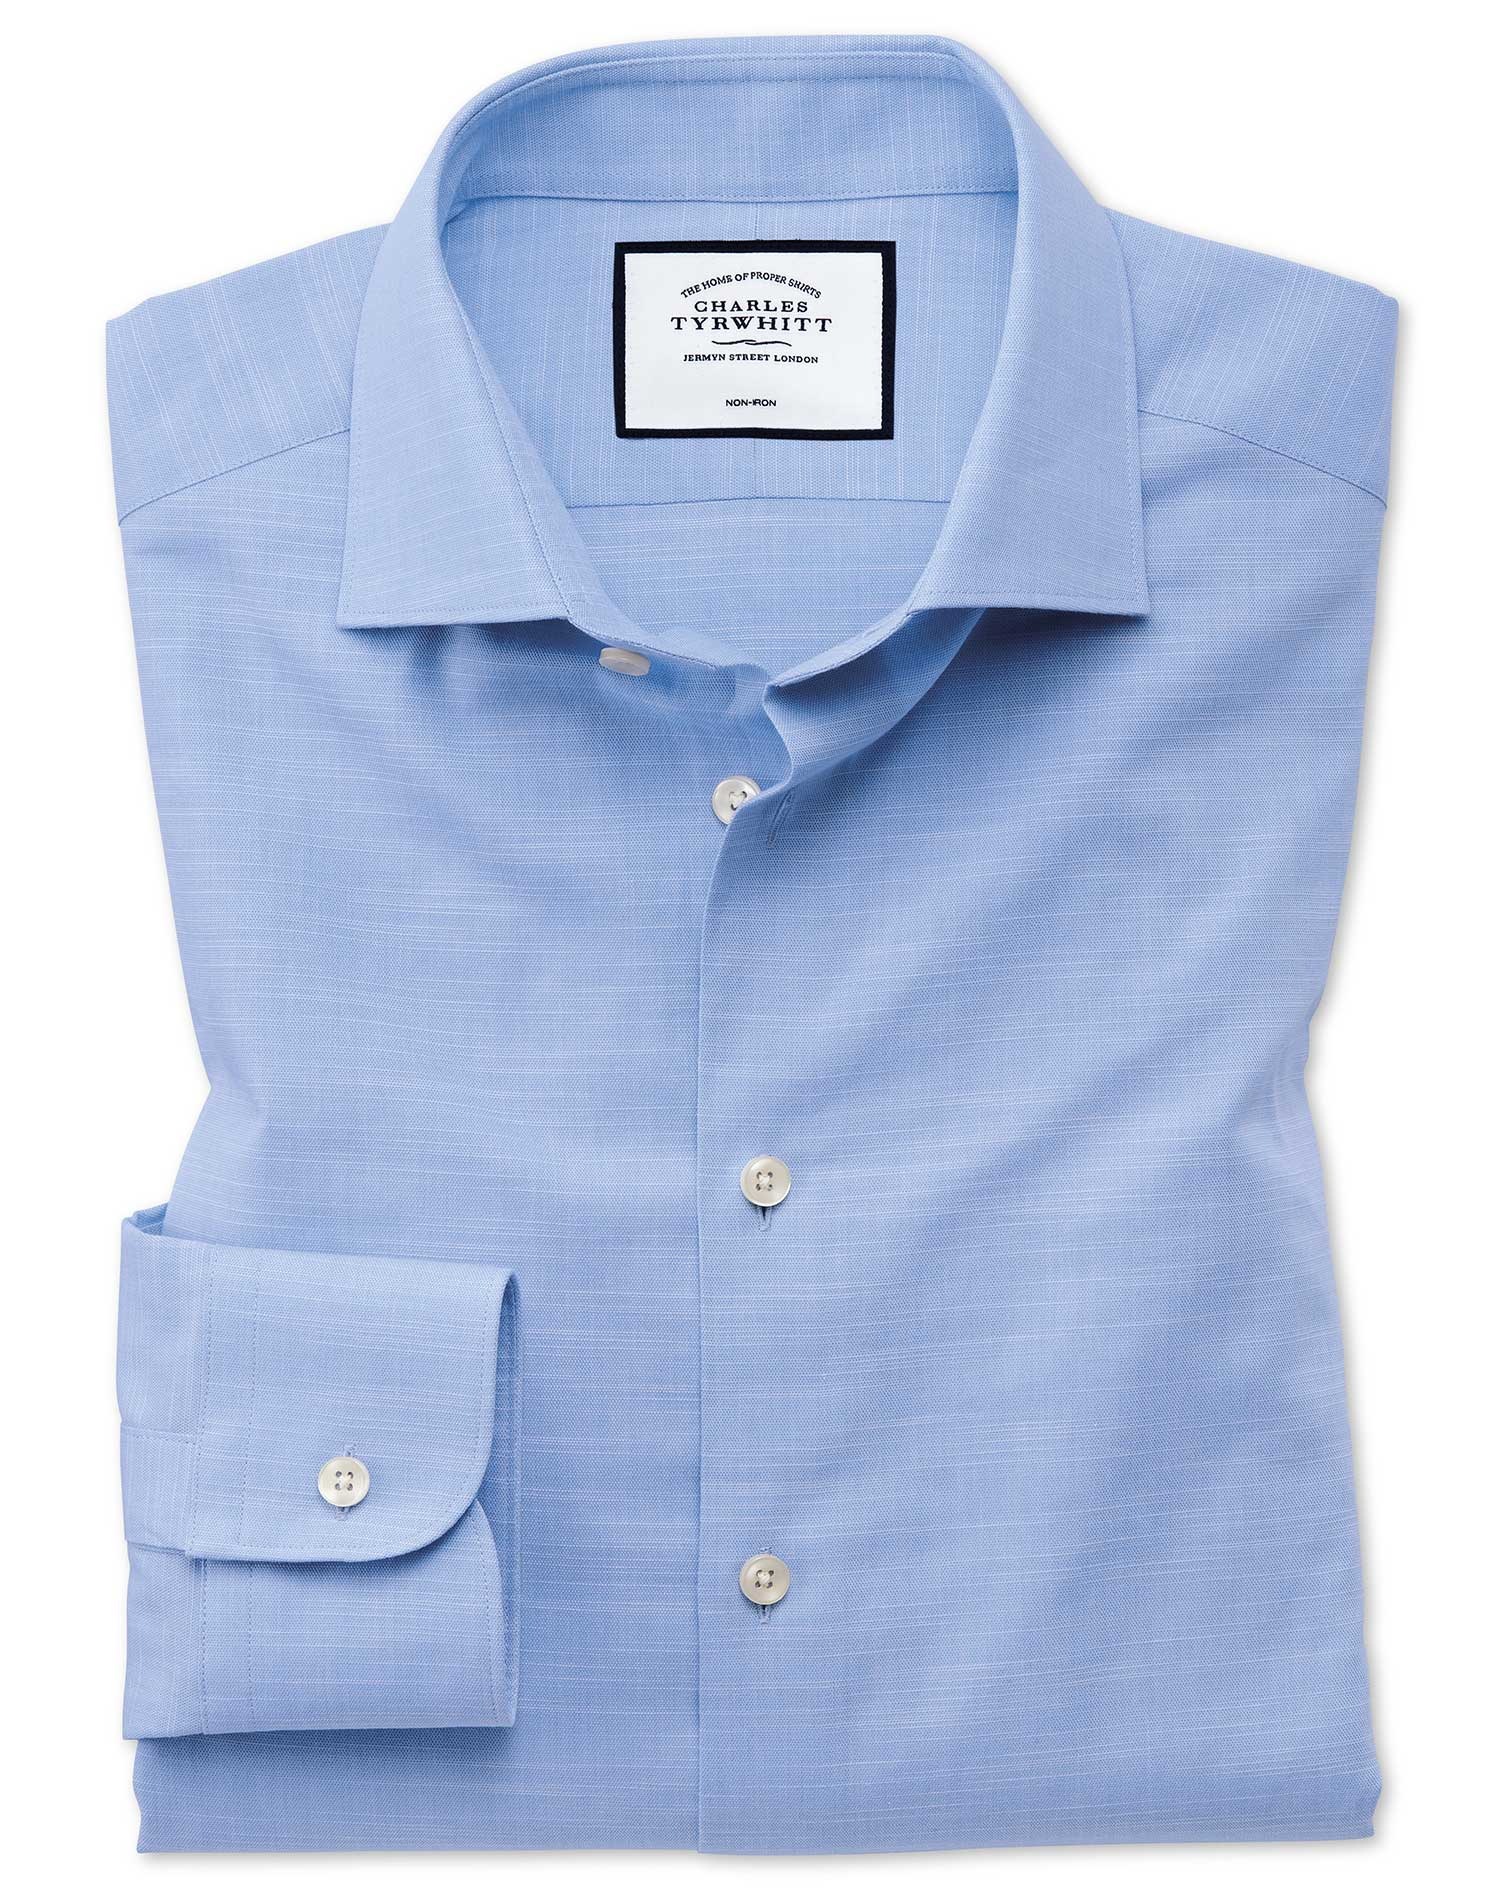 Classic Fit Business Casual Egyptian Cotton Slub Sky Blue Formal Shirt Single Cuff Size 18/36 by Cha